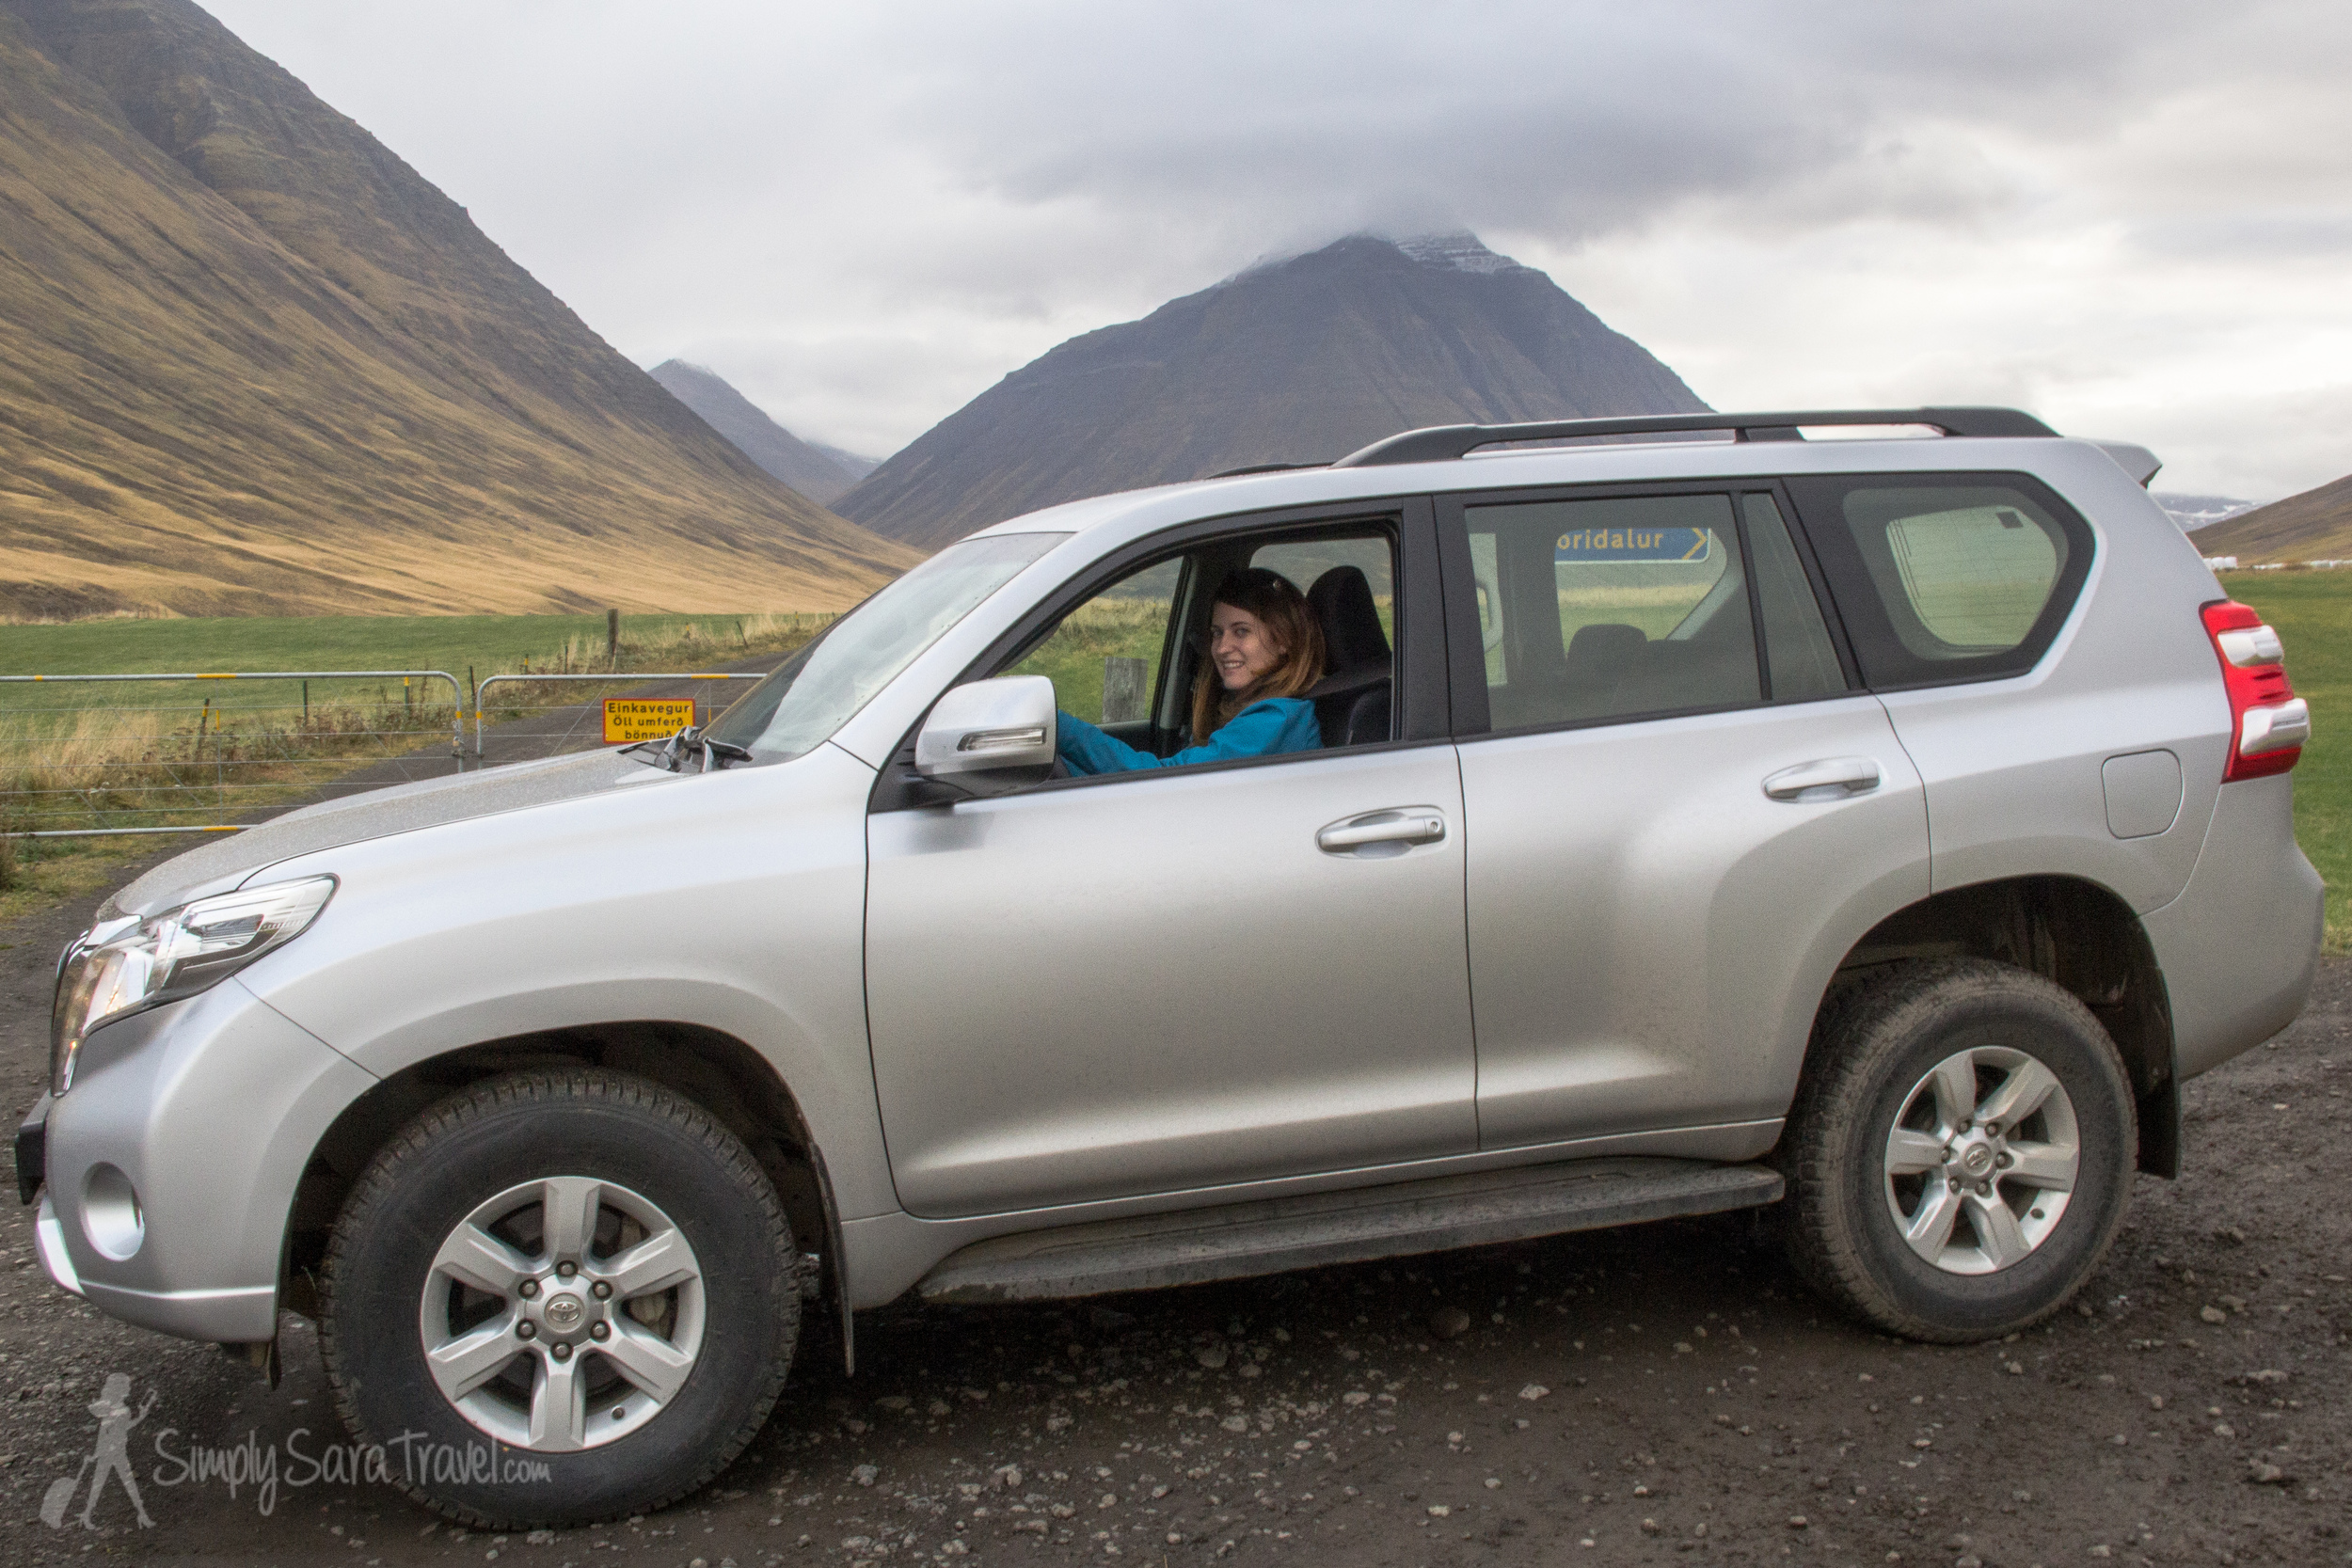 At least if I have to drive a big vehicle, I'm doing it on the open roads of Iceland and not the tiny, tight roads of France!